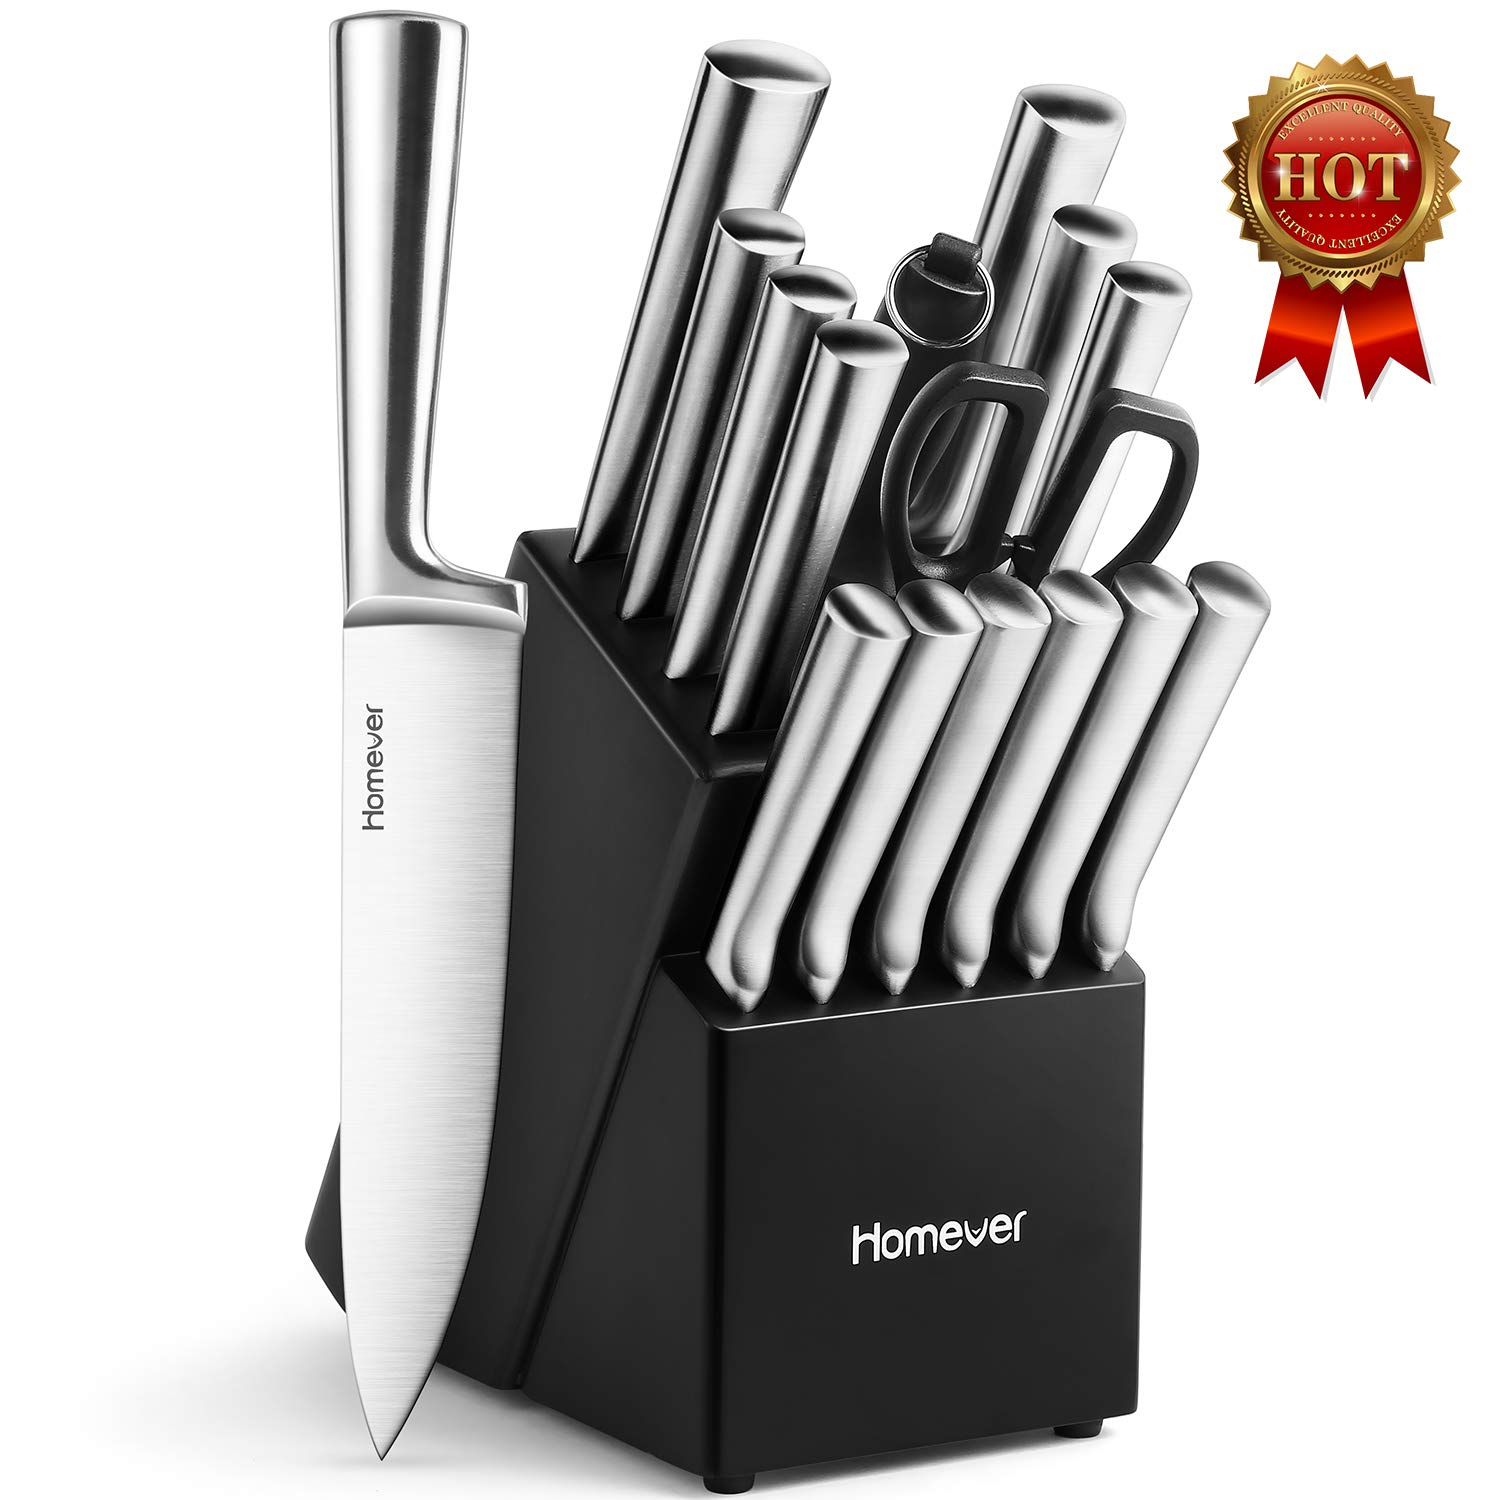 Homever 16-Piece Kitchen Knife Set